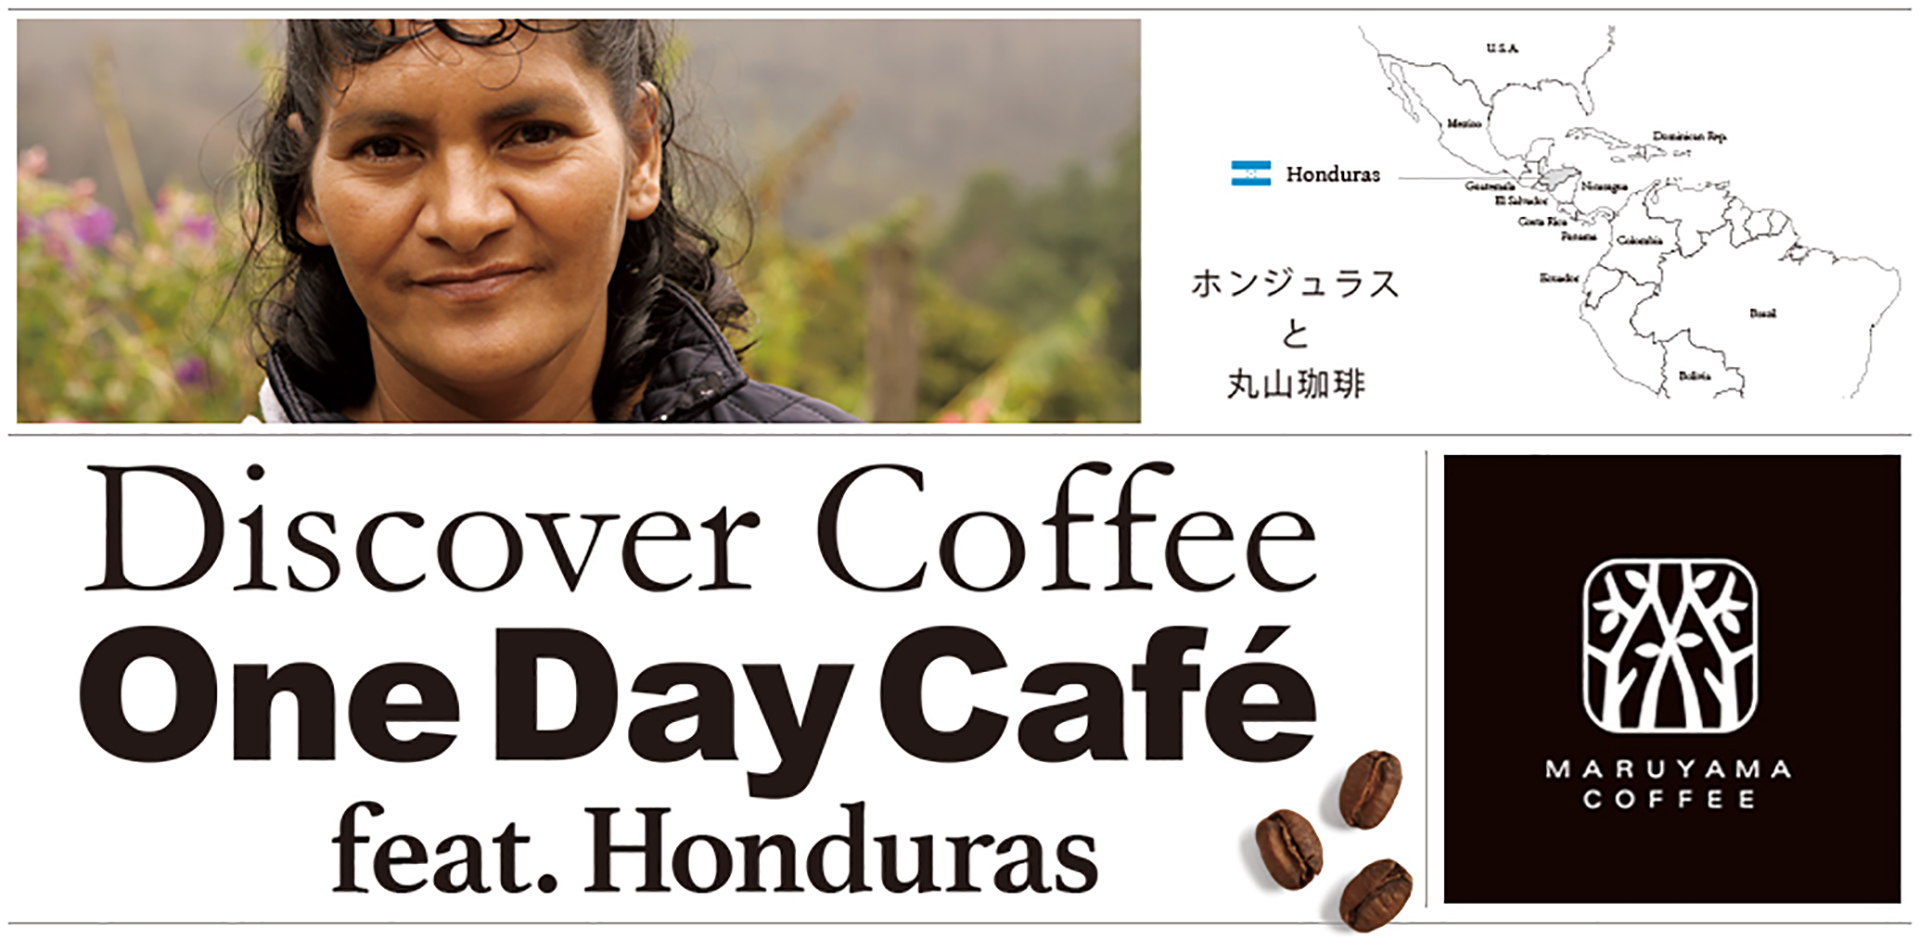 Discover Coffee One day Cafe feat. Hondurasメインビジュアル